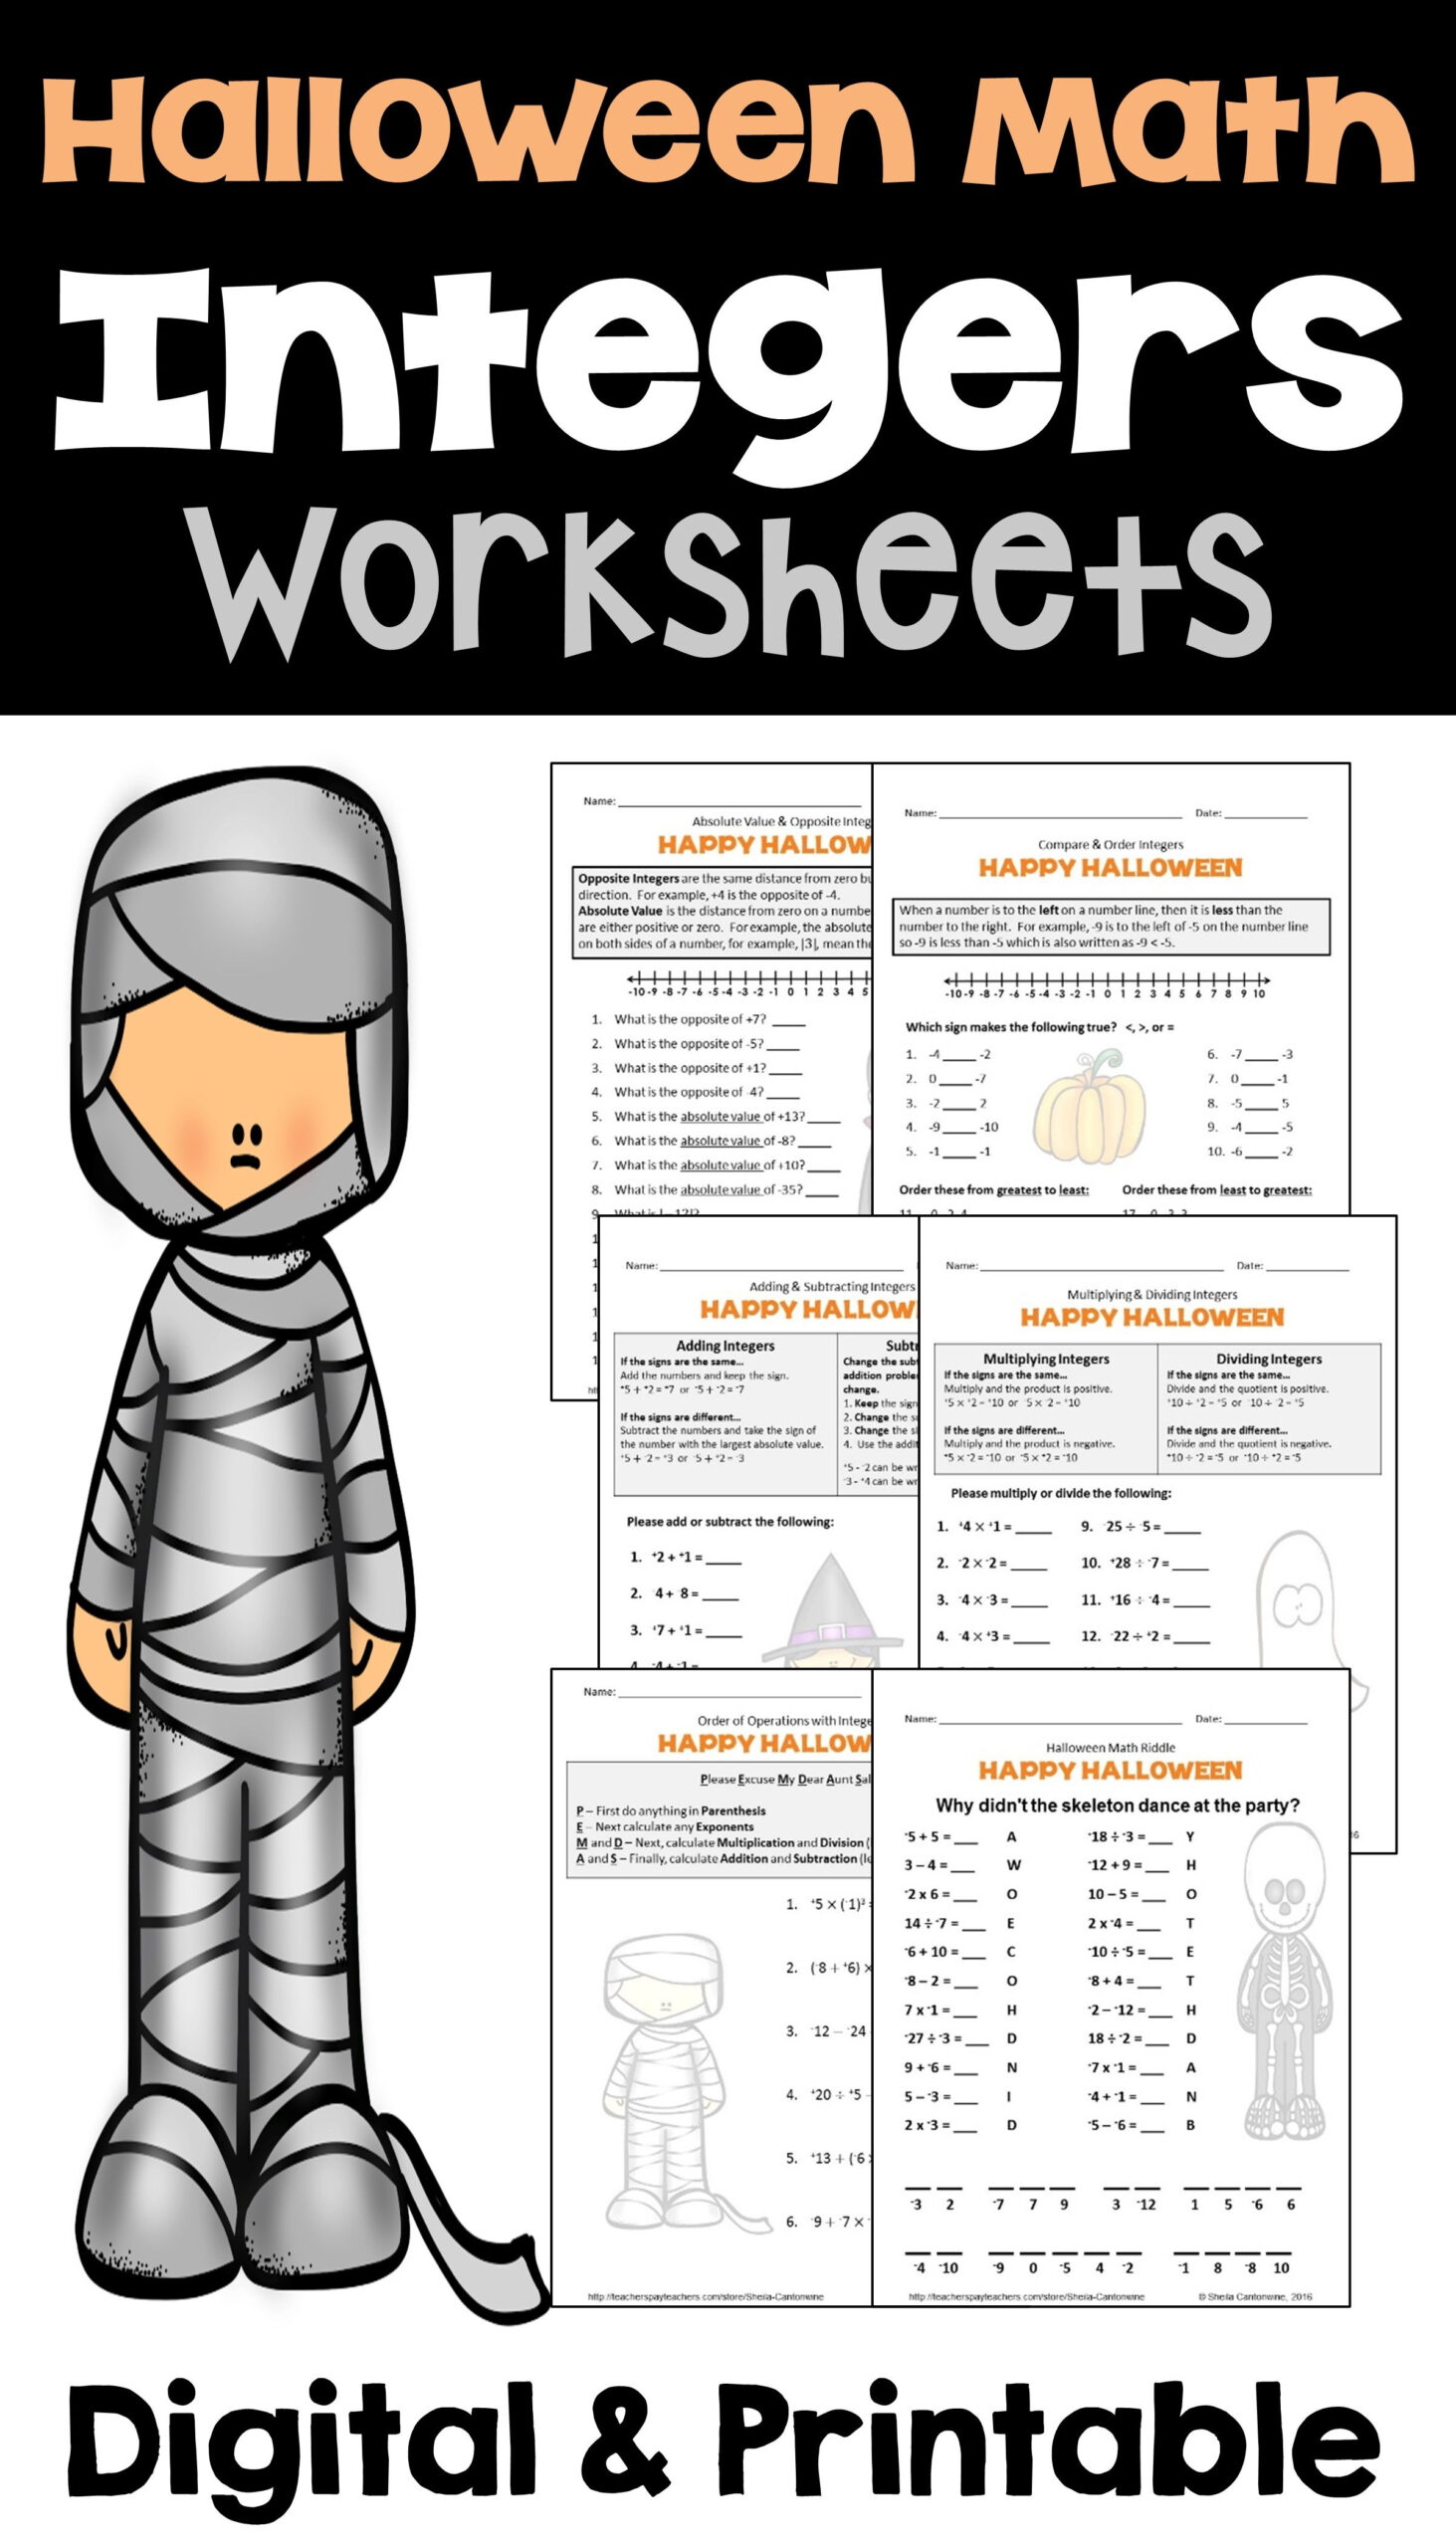 Fun Halloween Worksheets For 6th Graders